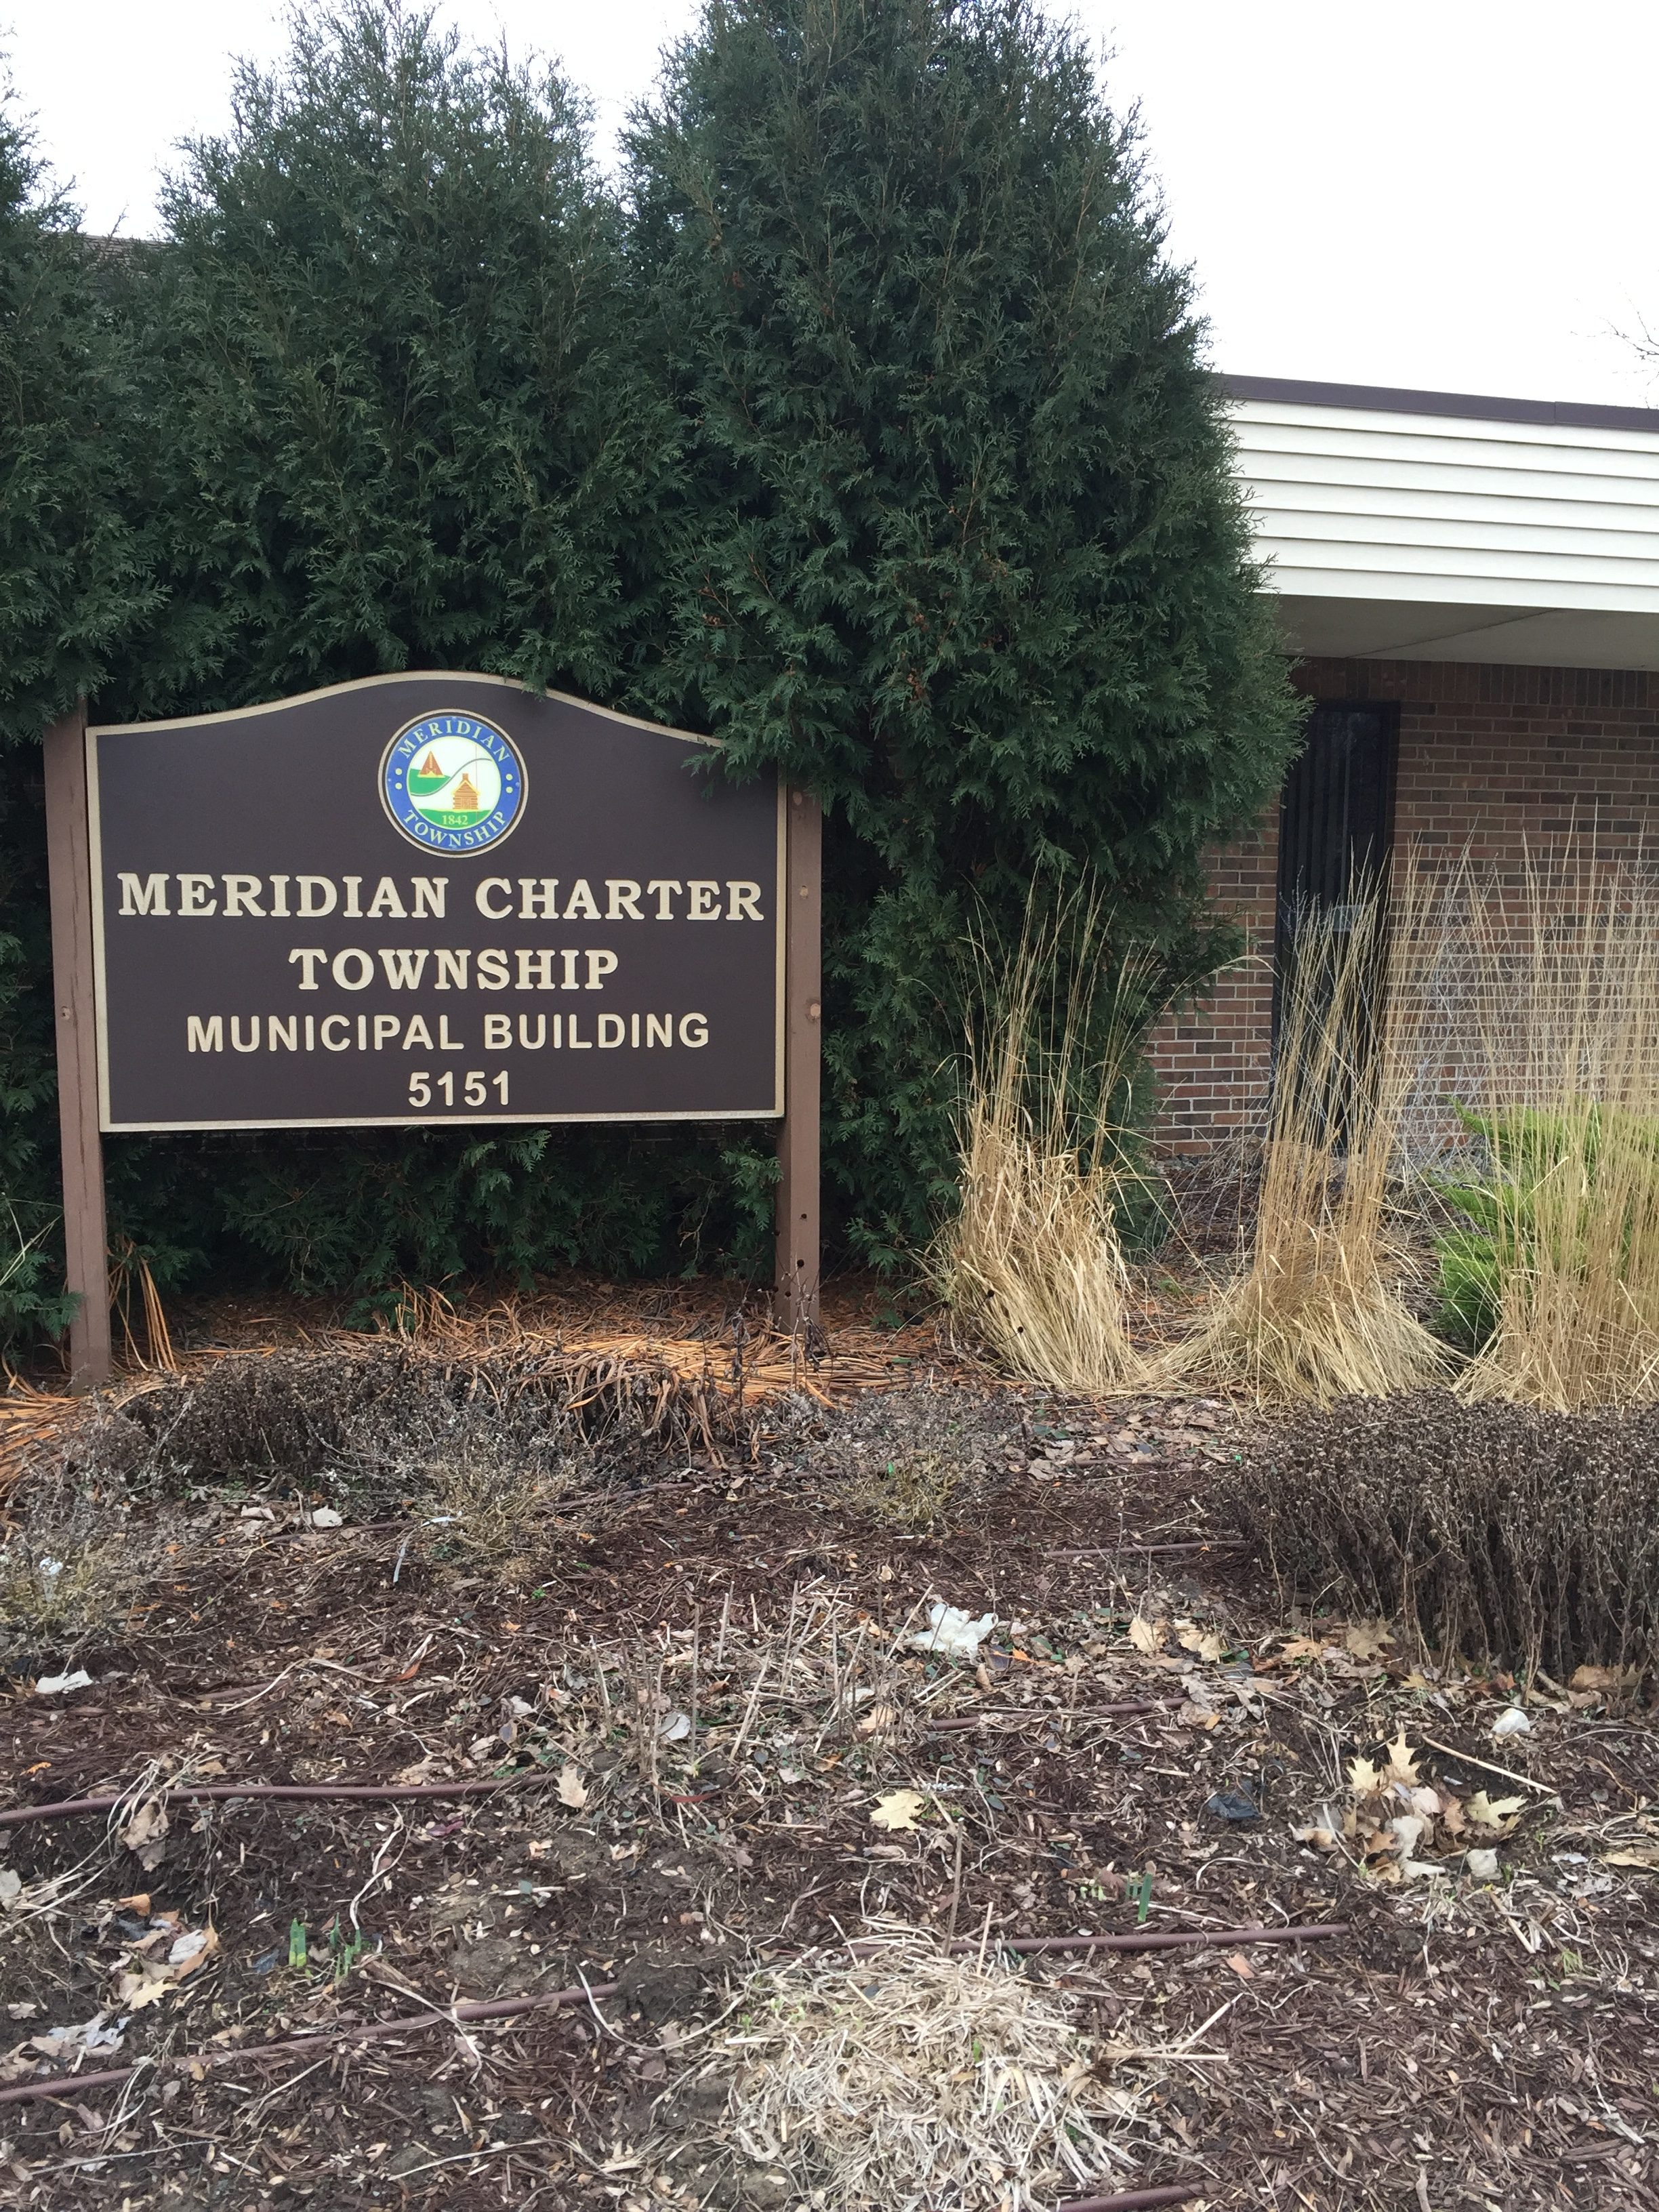 Meridian Township will be celebrating their 175th anniversary by hosting the event, Pancake Breakfast.